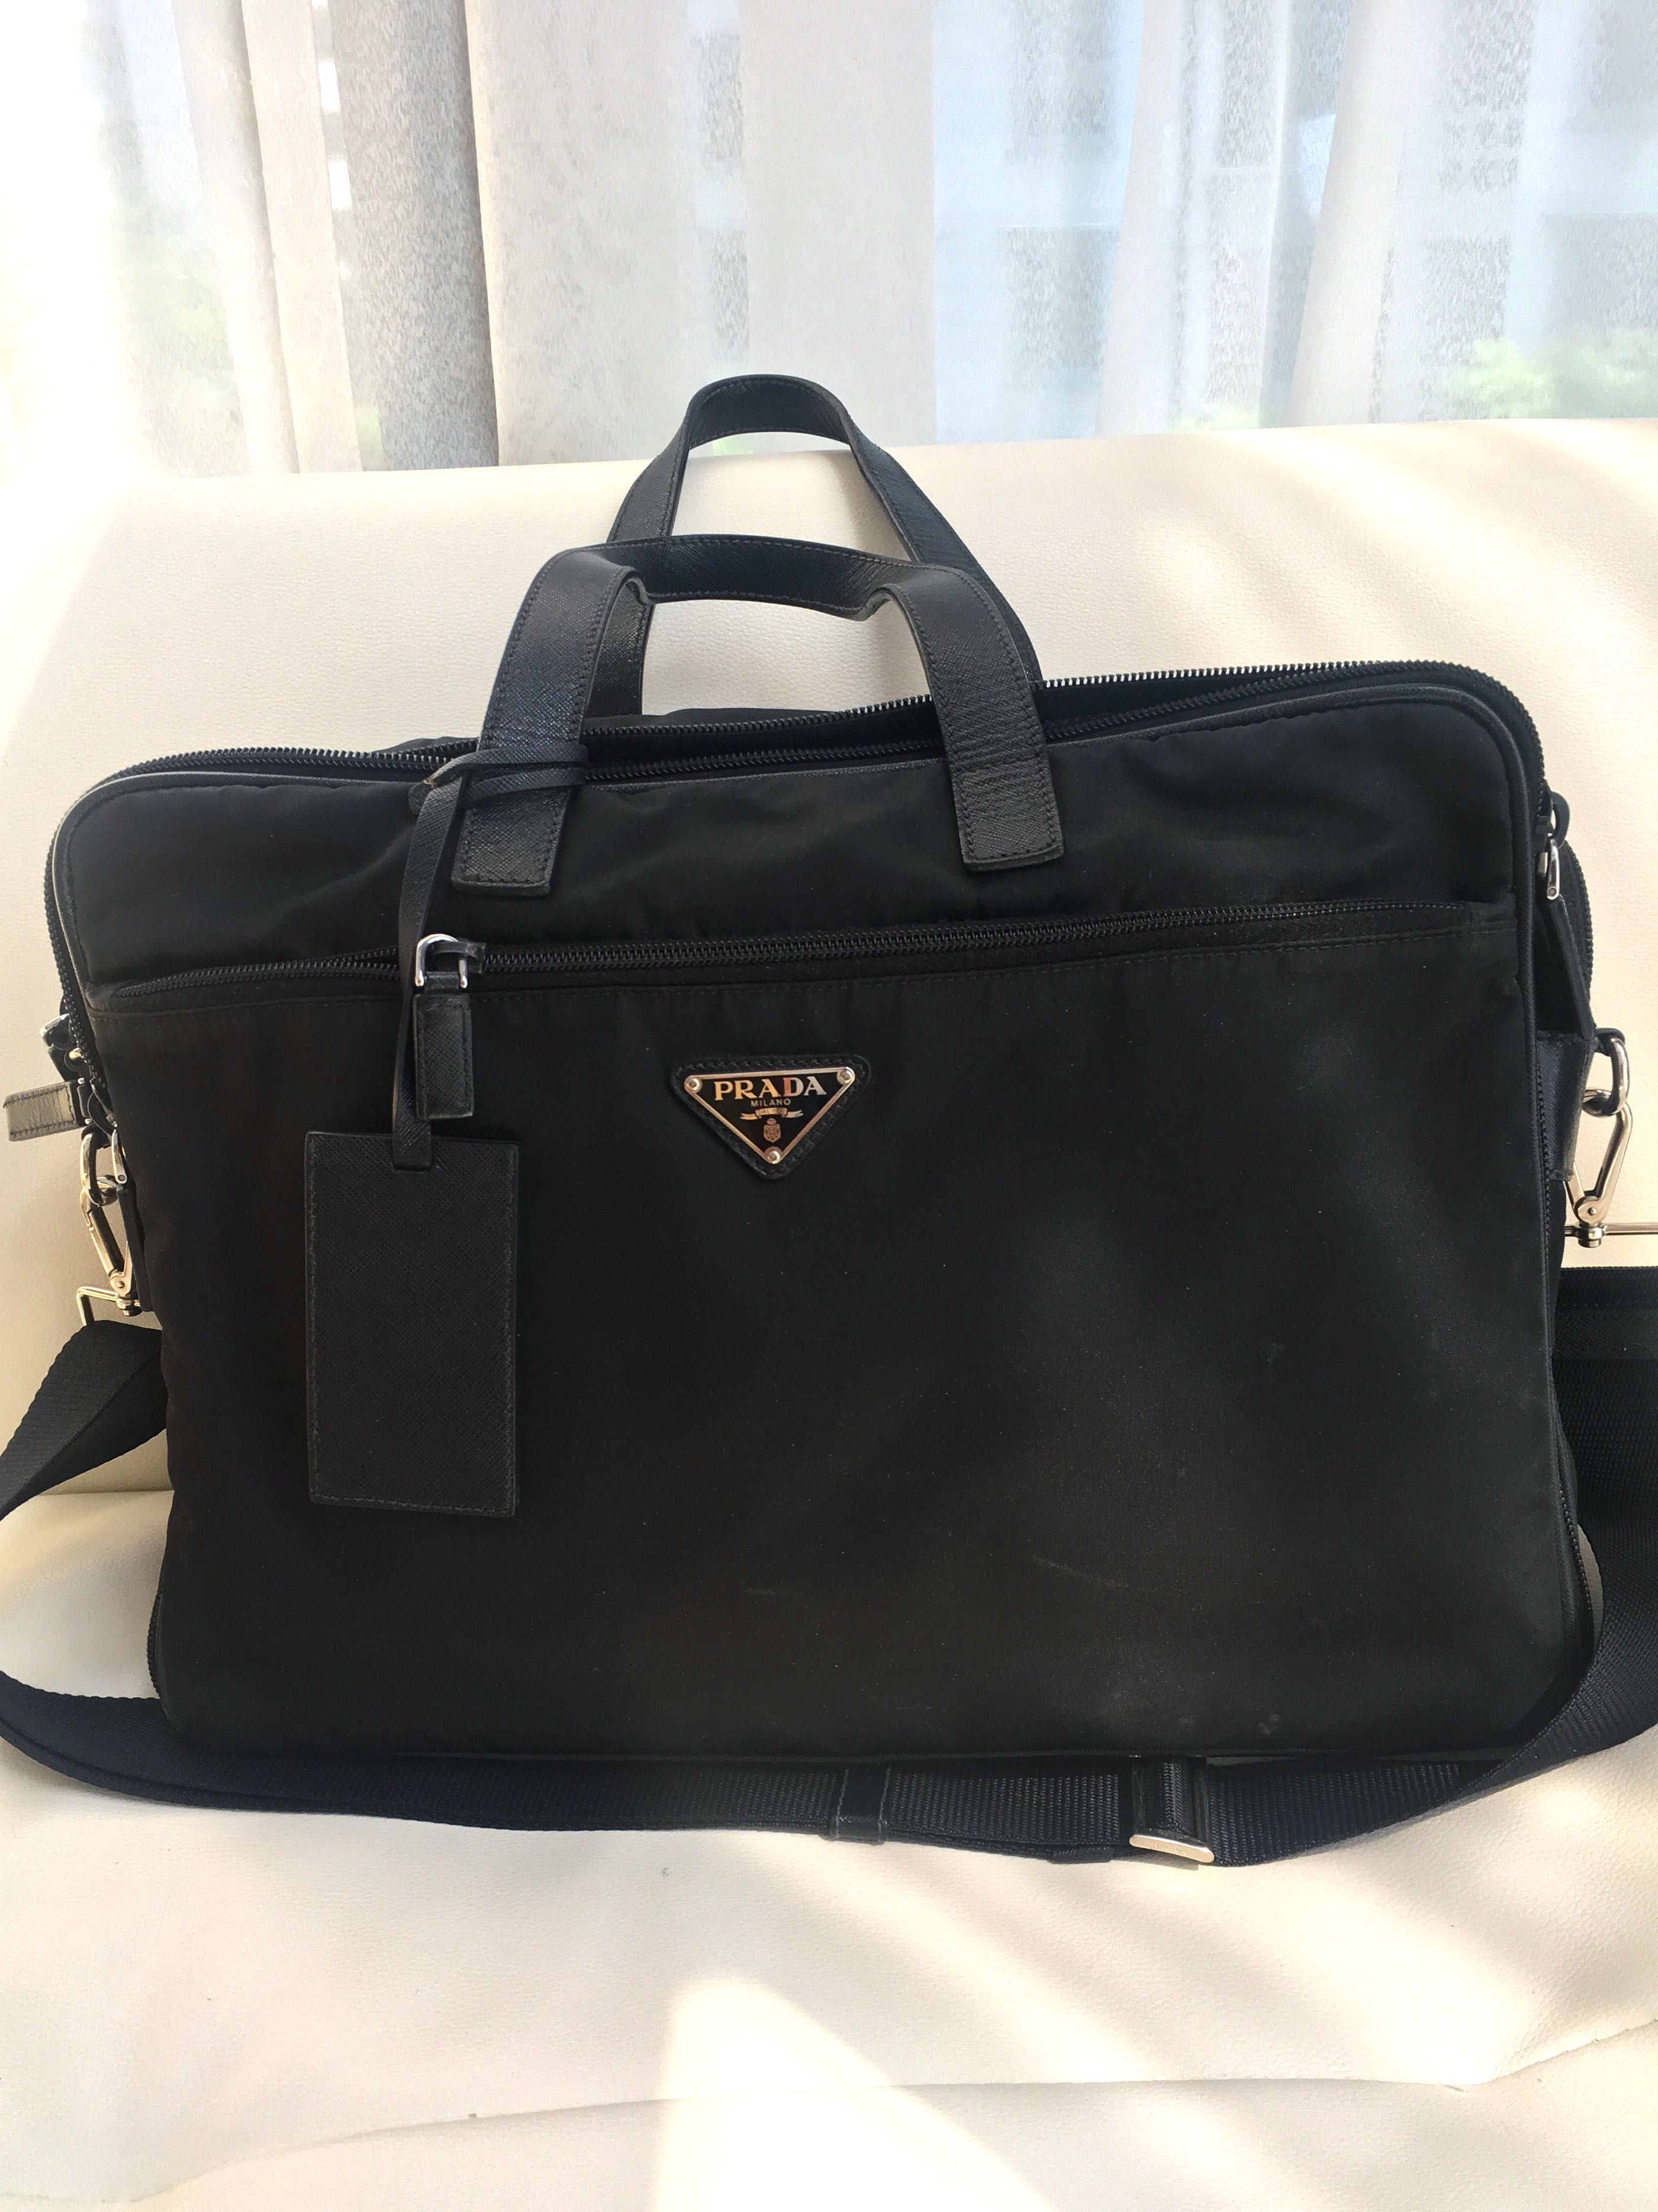 ad158bac0d Authentic Prada briefcase, Men's Fashion, Bags & Wallets, Briefcases on  Carousell